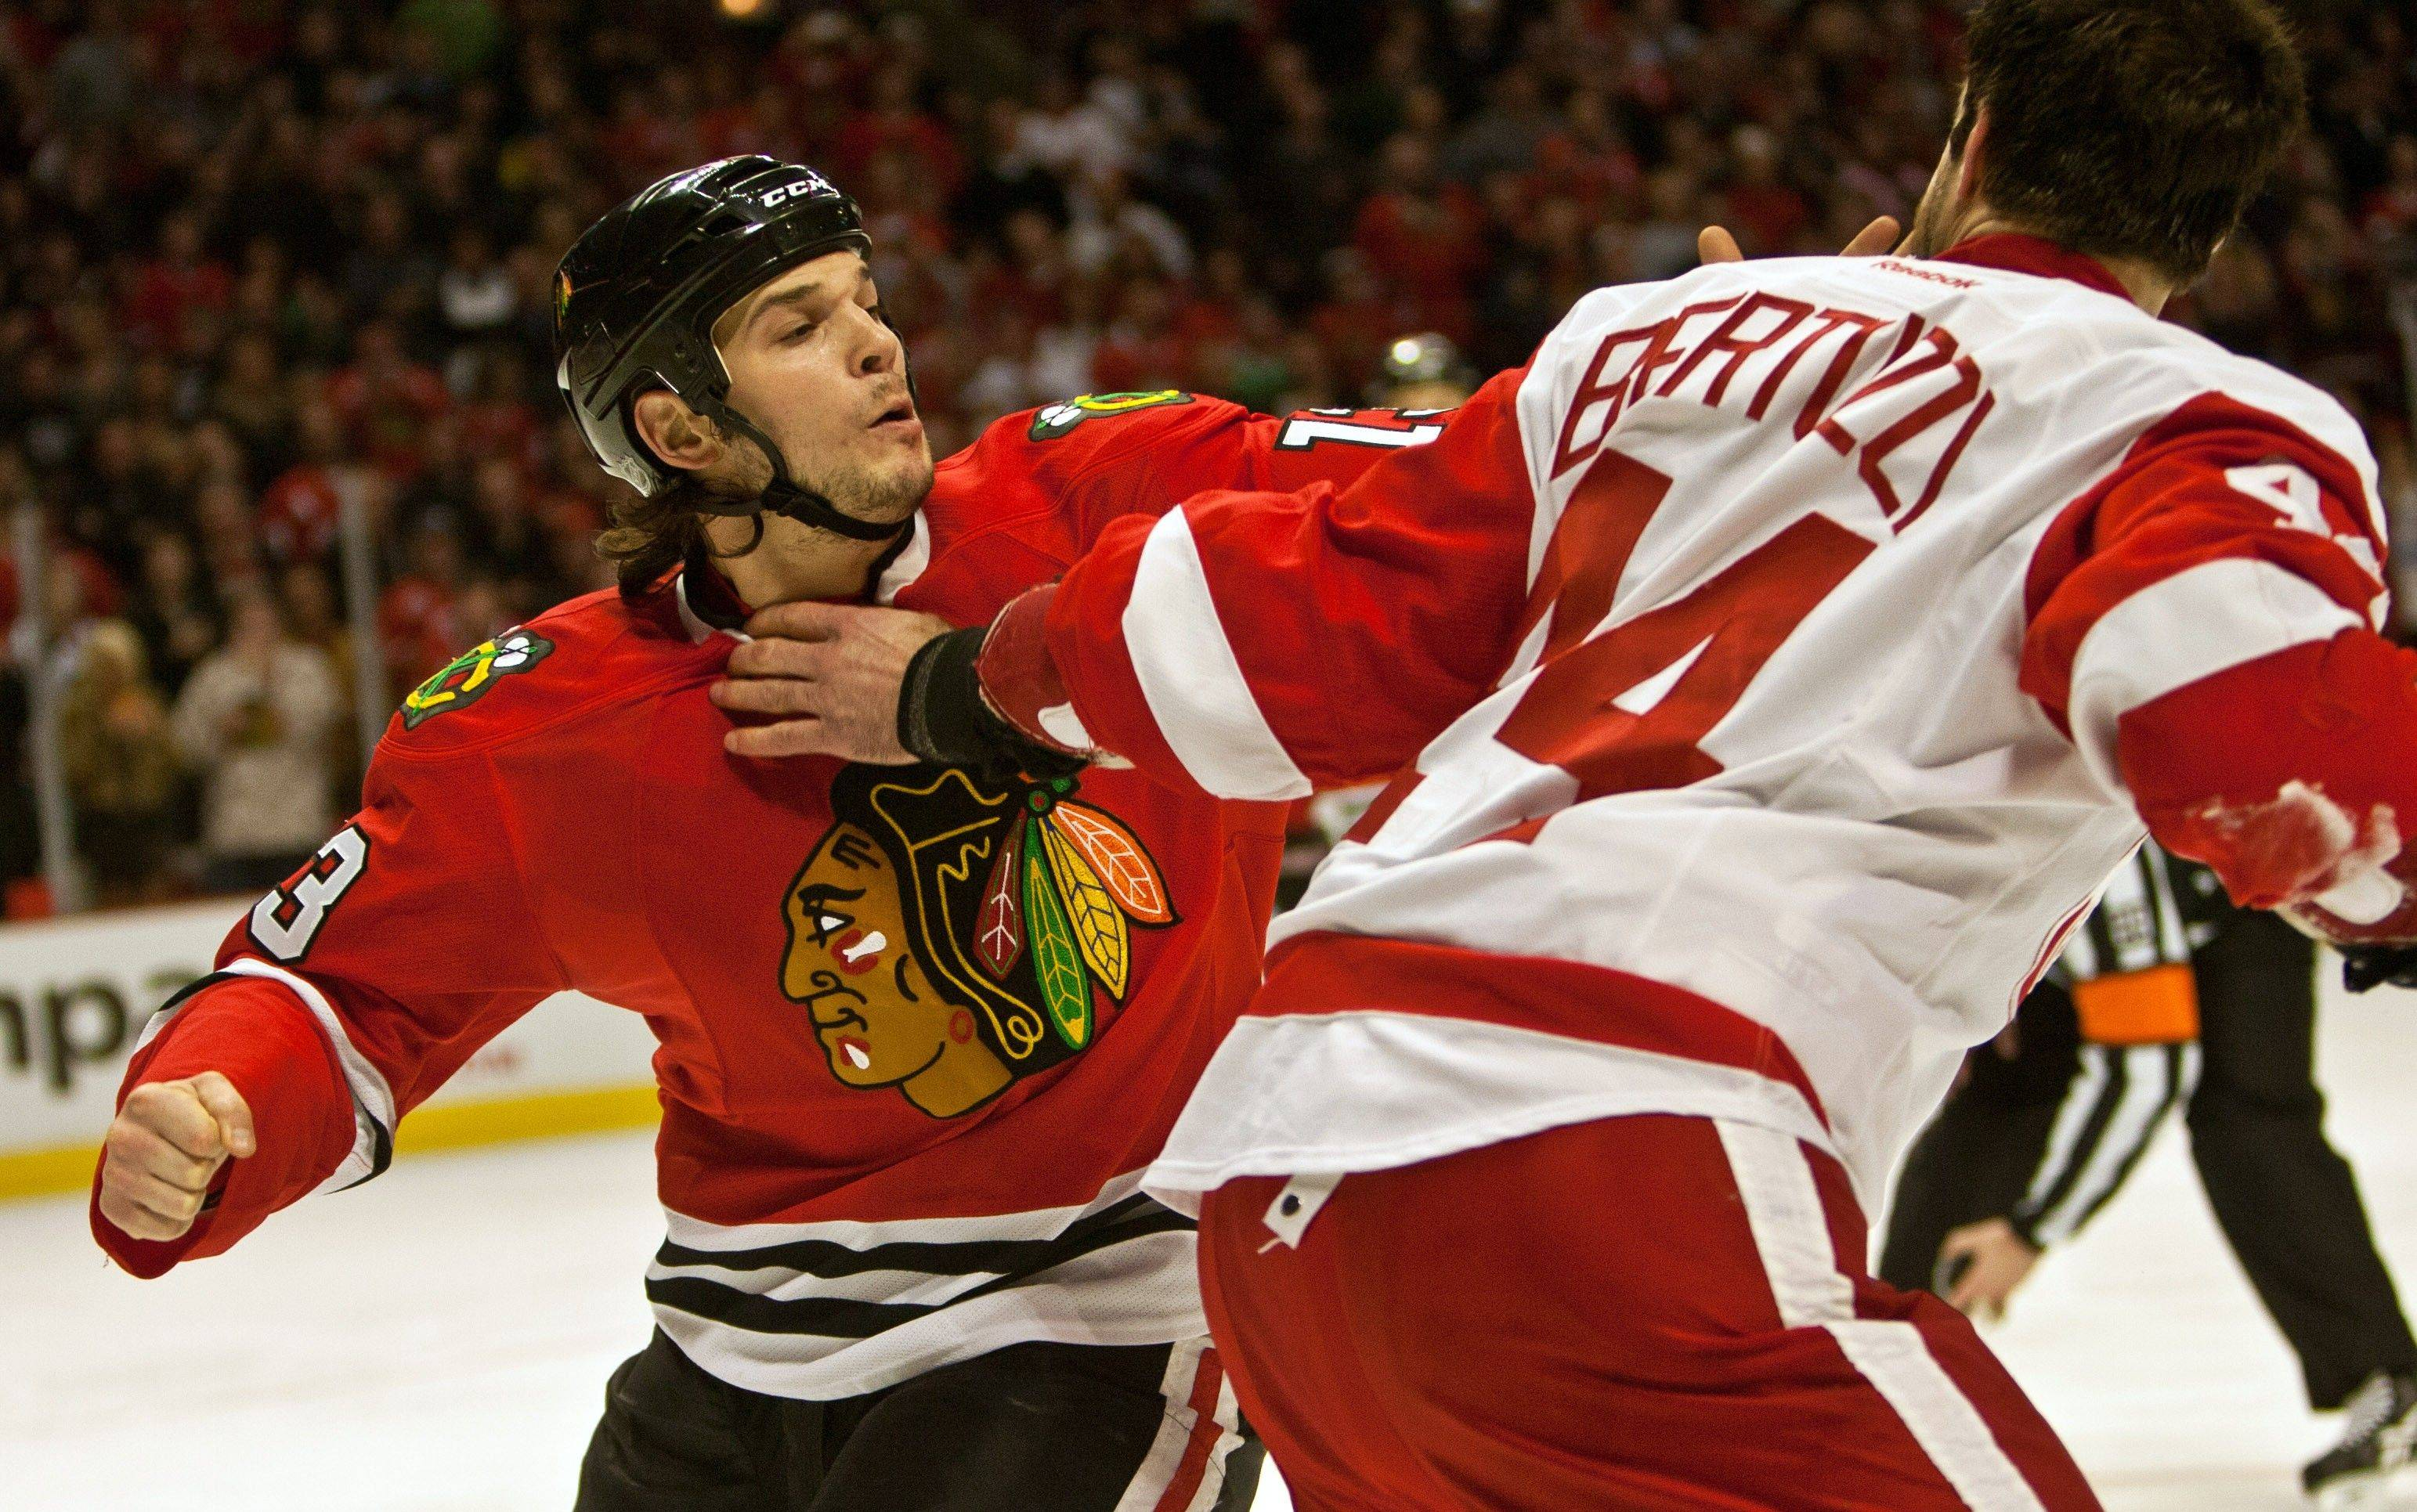 Daniel Carcillo, here fighting Detroit's Todd Bertuzzi on Dec. 30, 2011, will miss the rest of the season. He needs reconstructive surgery on his left knee.